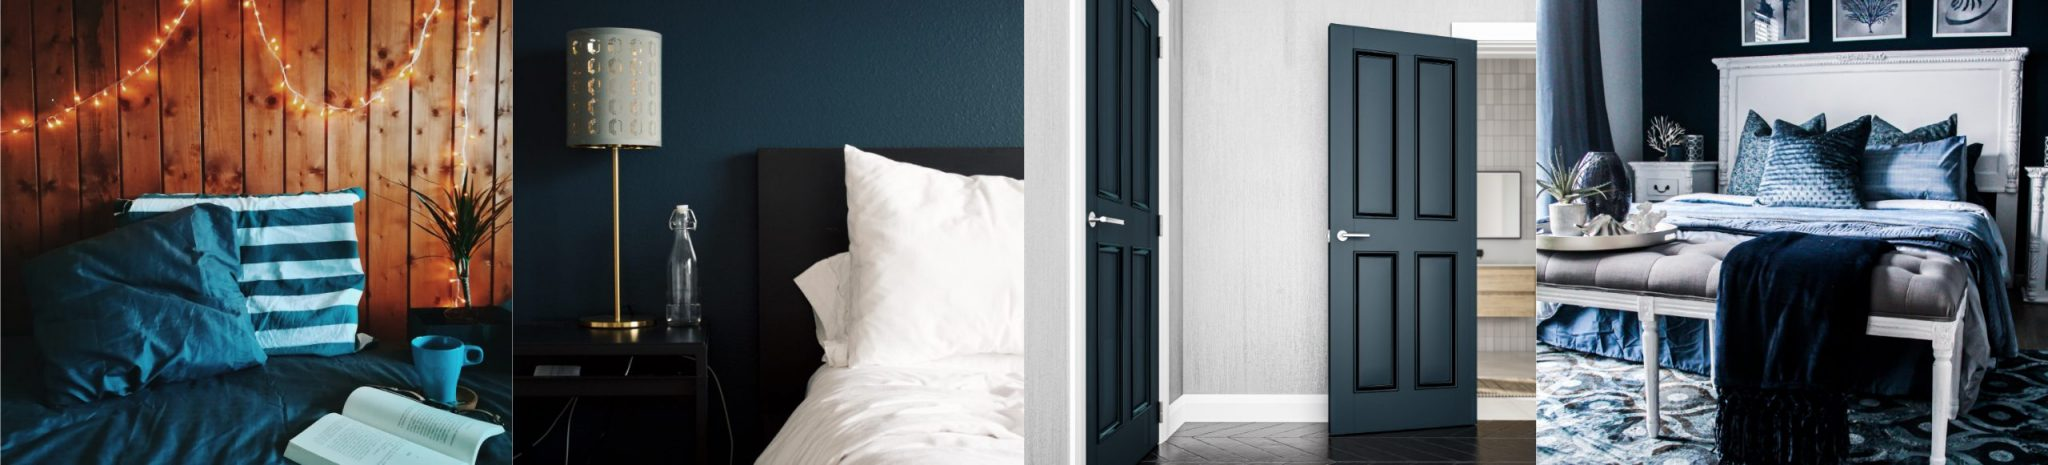 4 Images showing colour trends in the bedroom featuring bold deep colours.